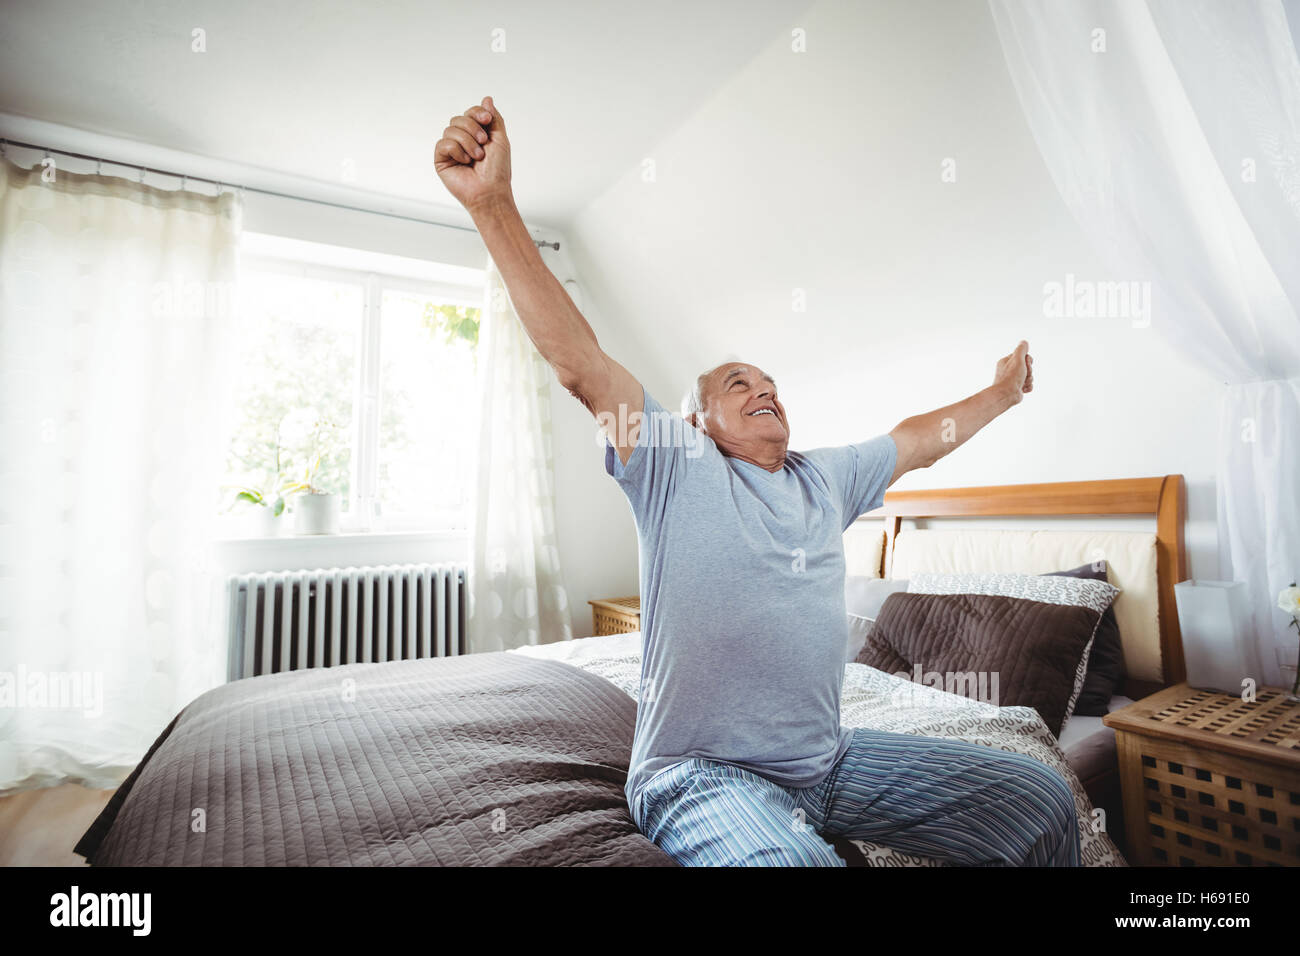 Senior man yawning on bed - Stock Image